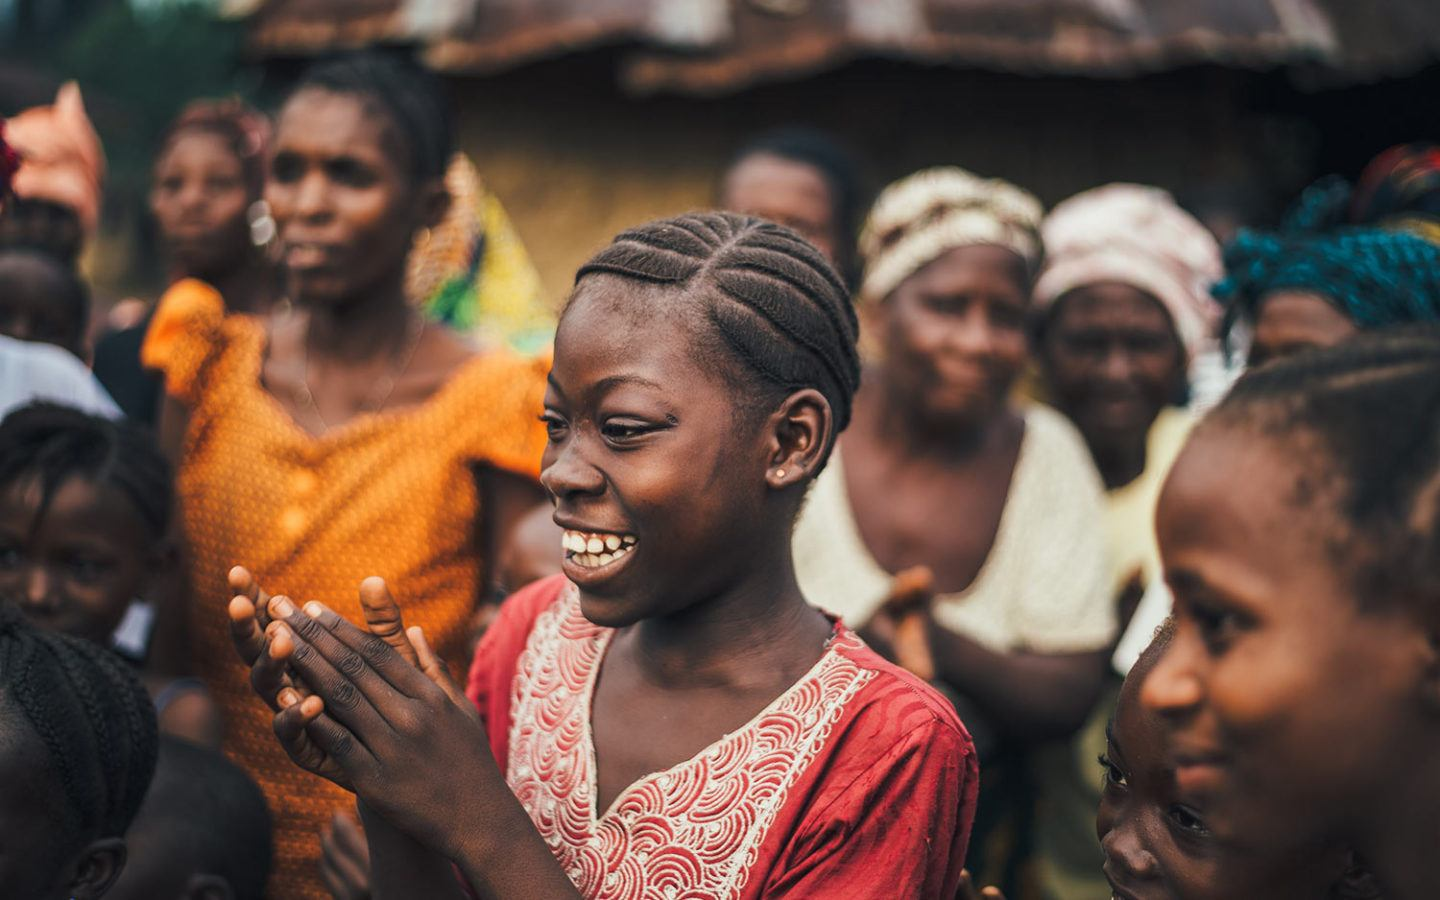 a group of young women smiling and clapping in a developing country